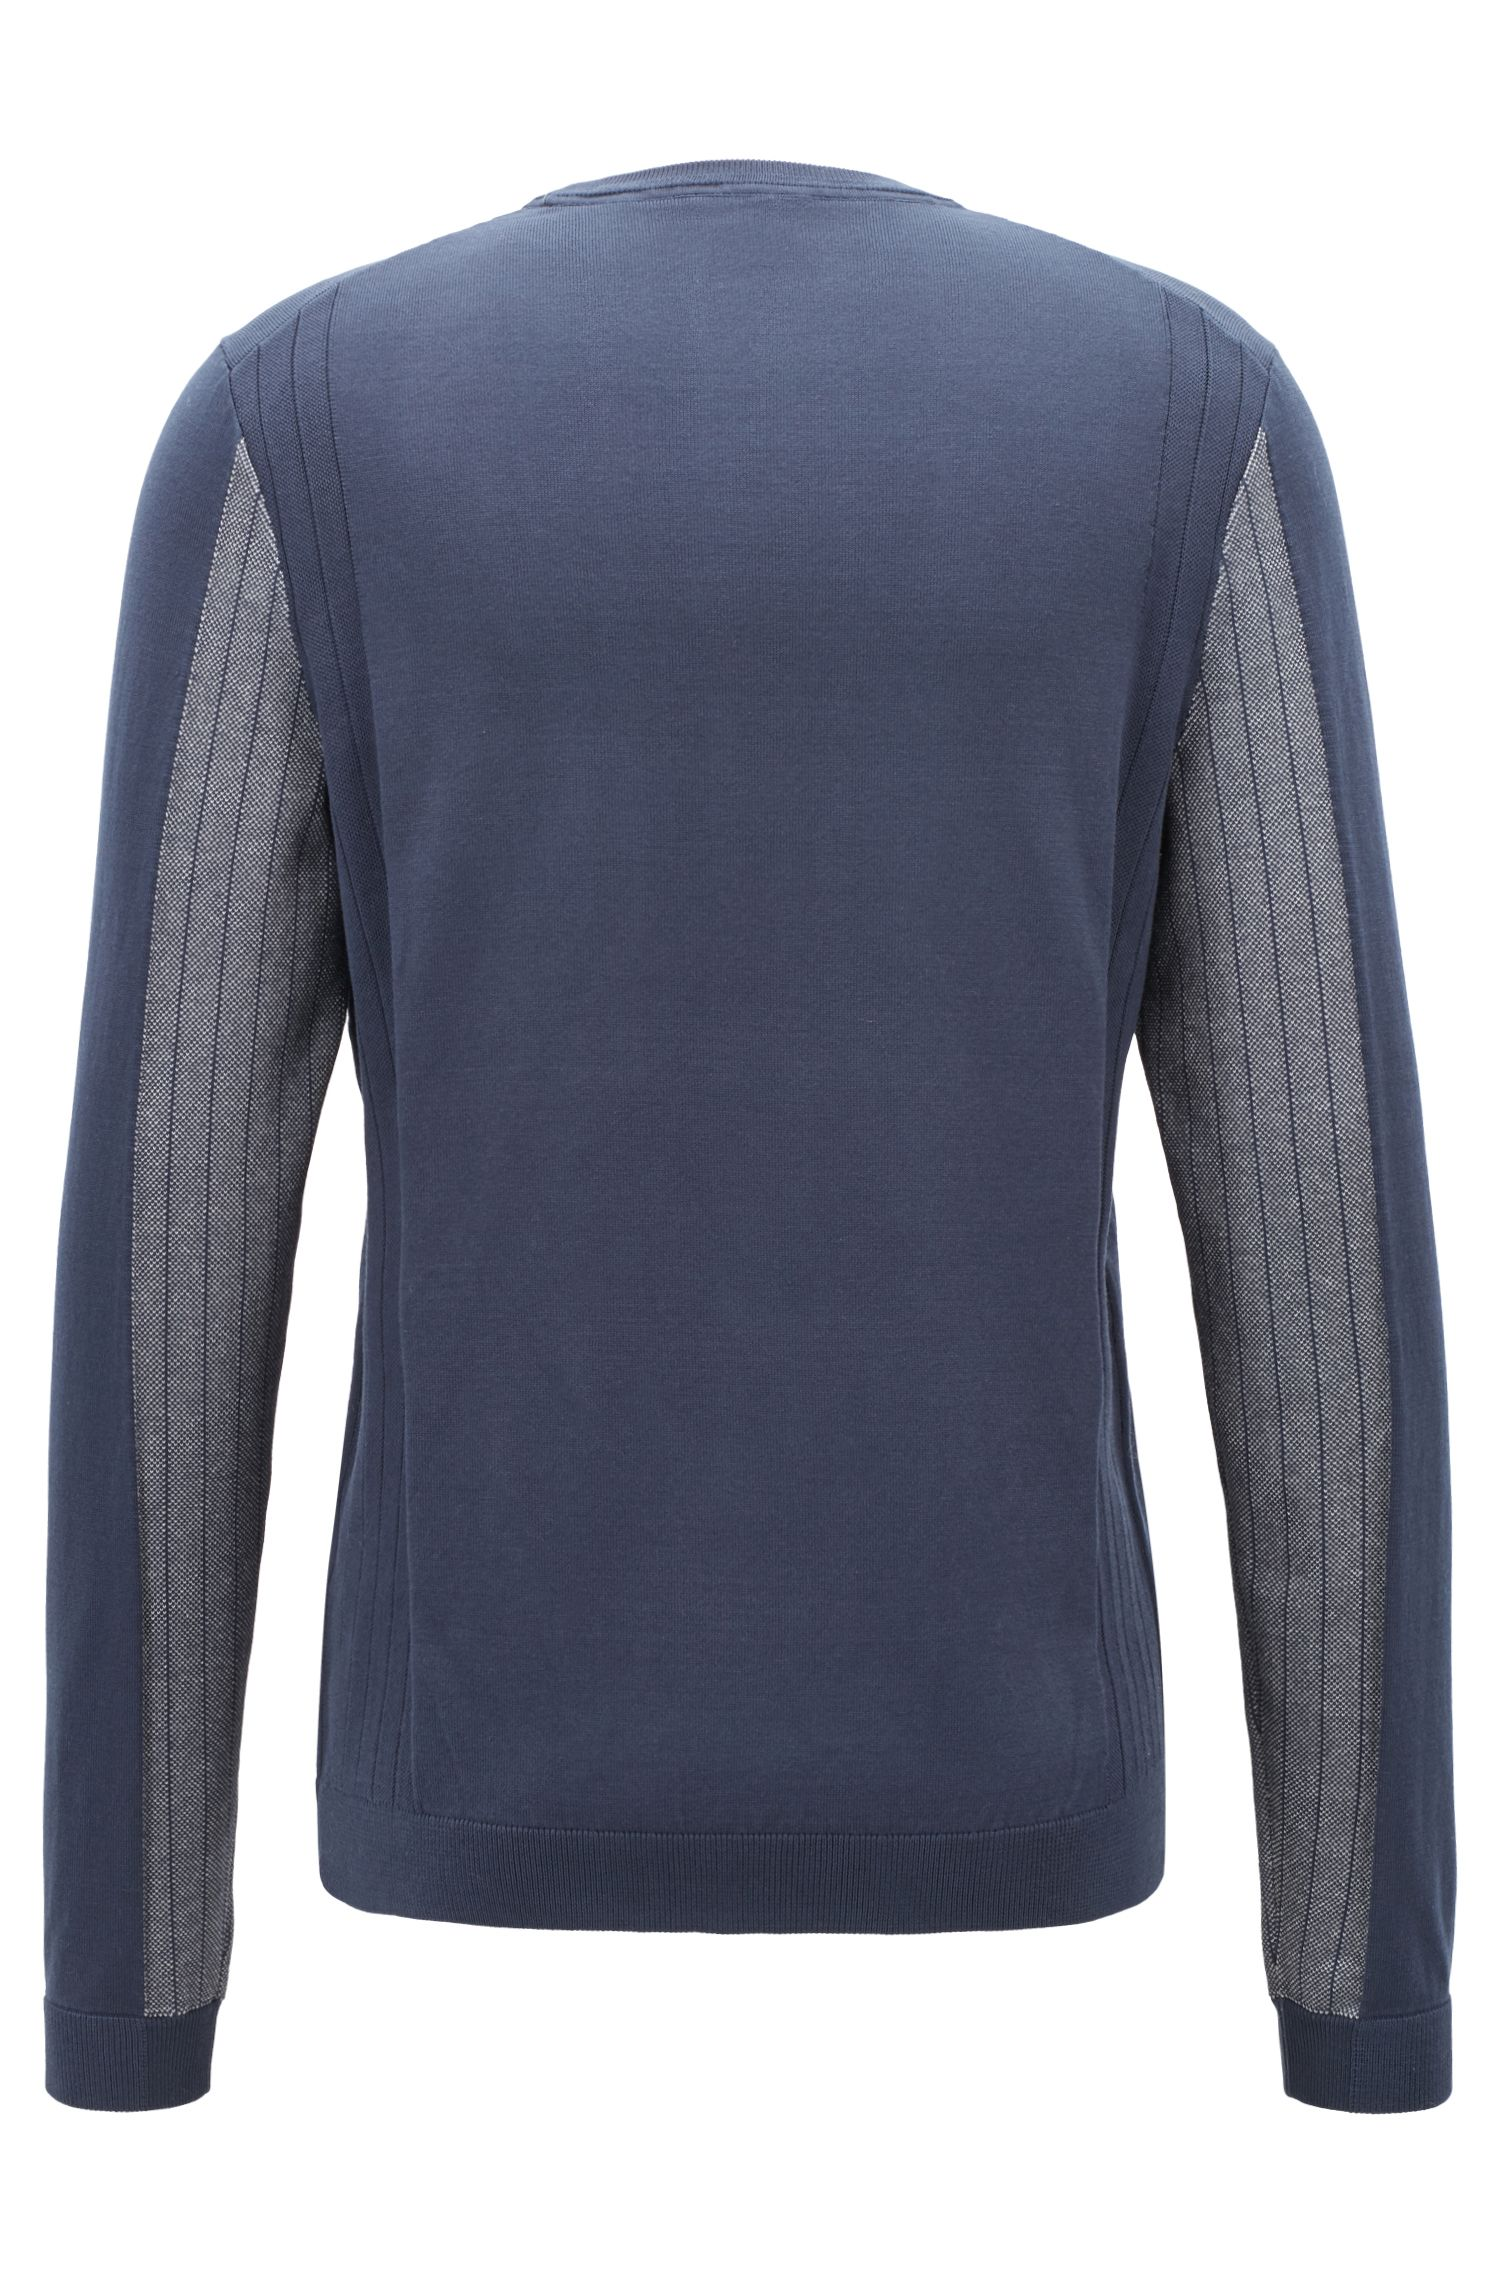 Crew-neck sweater with embossed logo and tonal details, Dark Blue